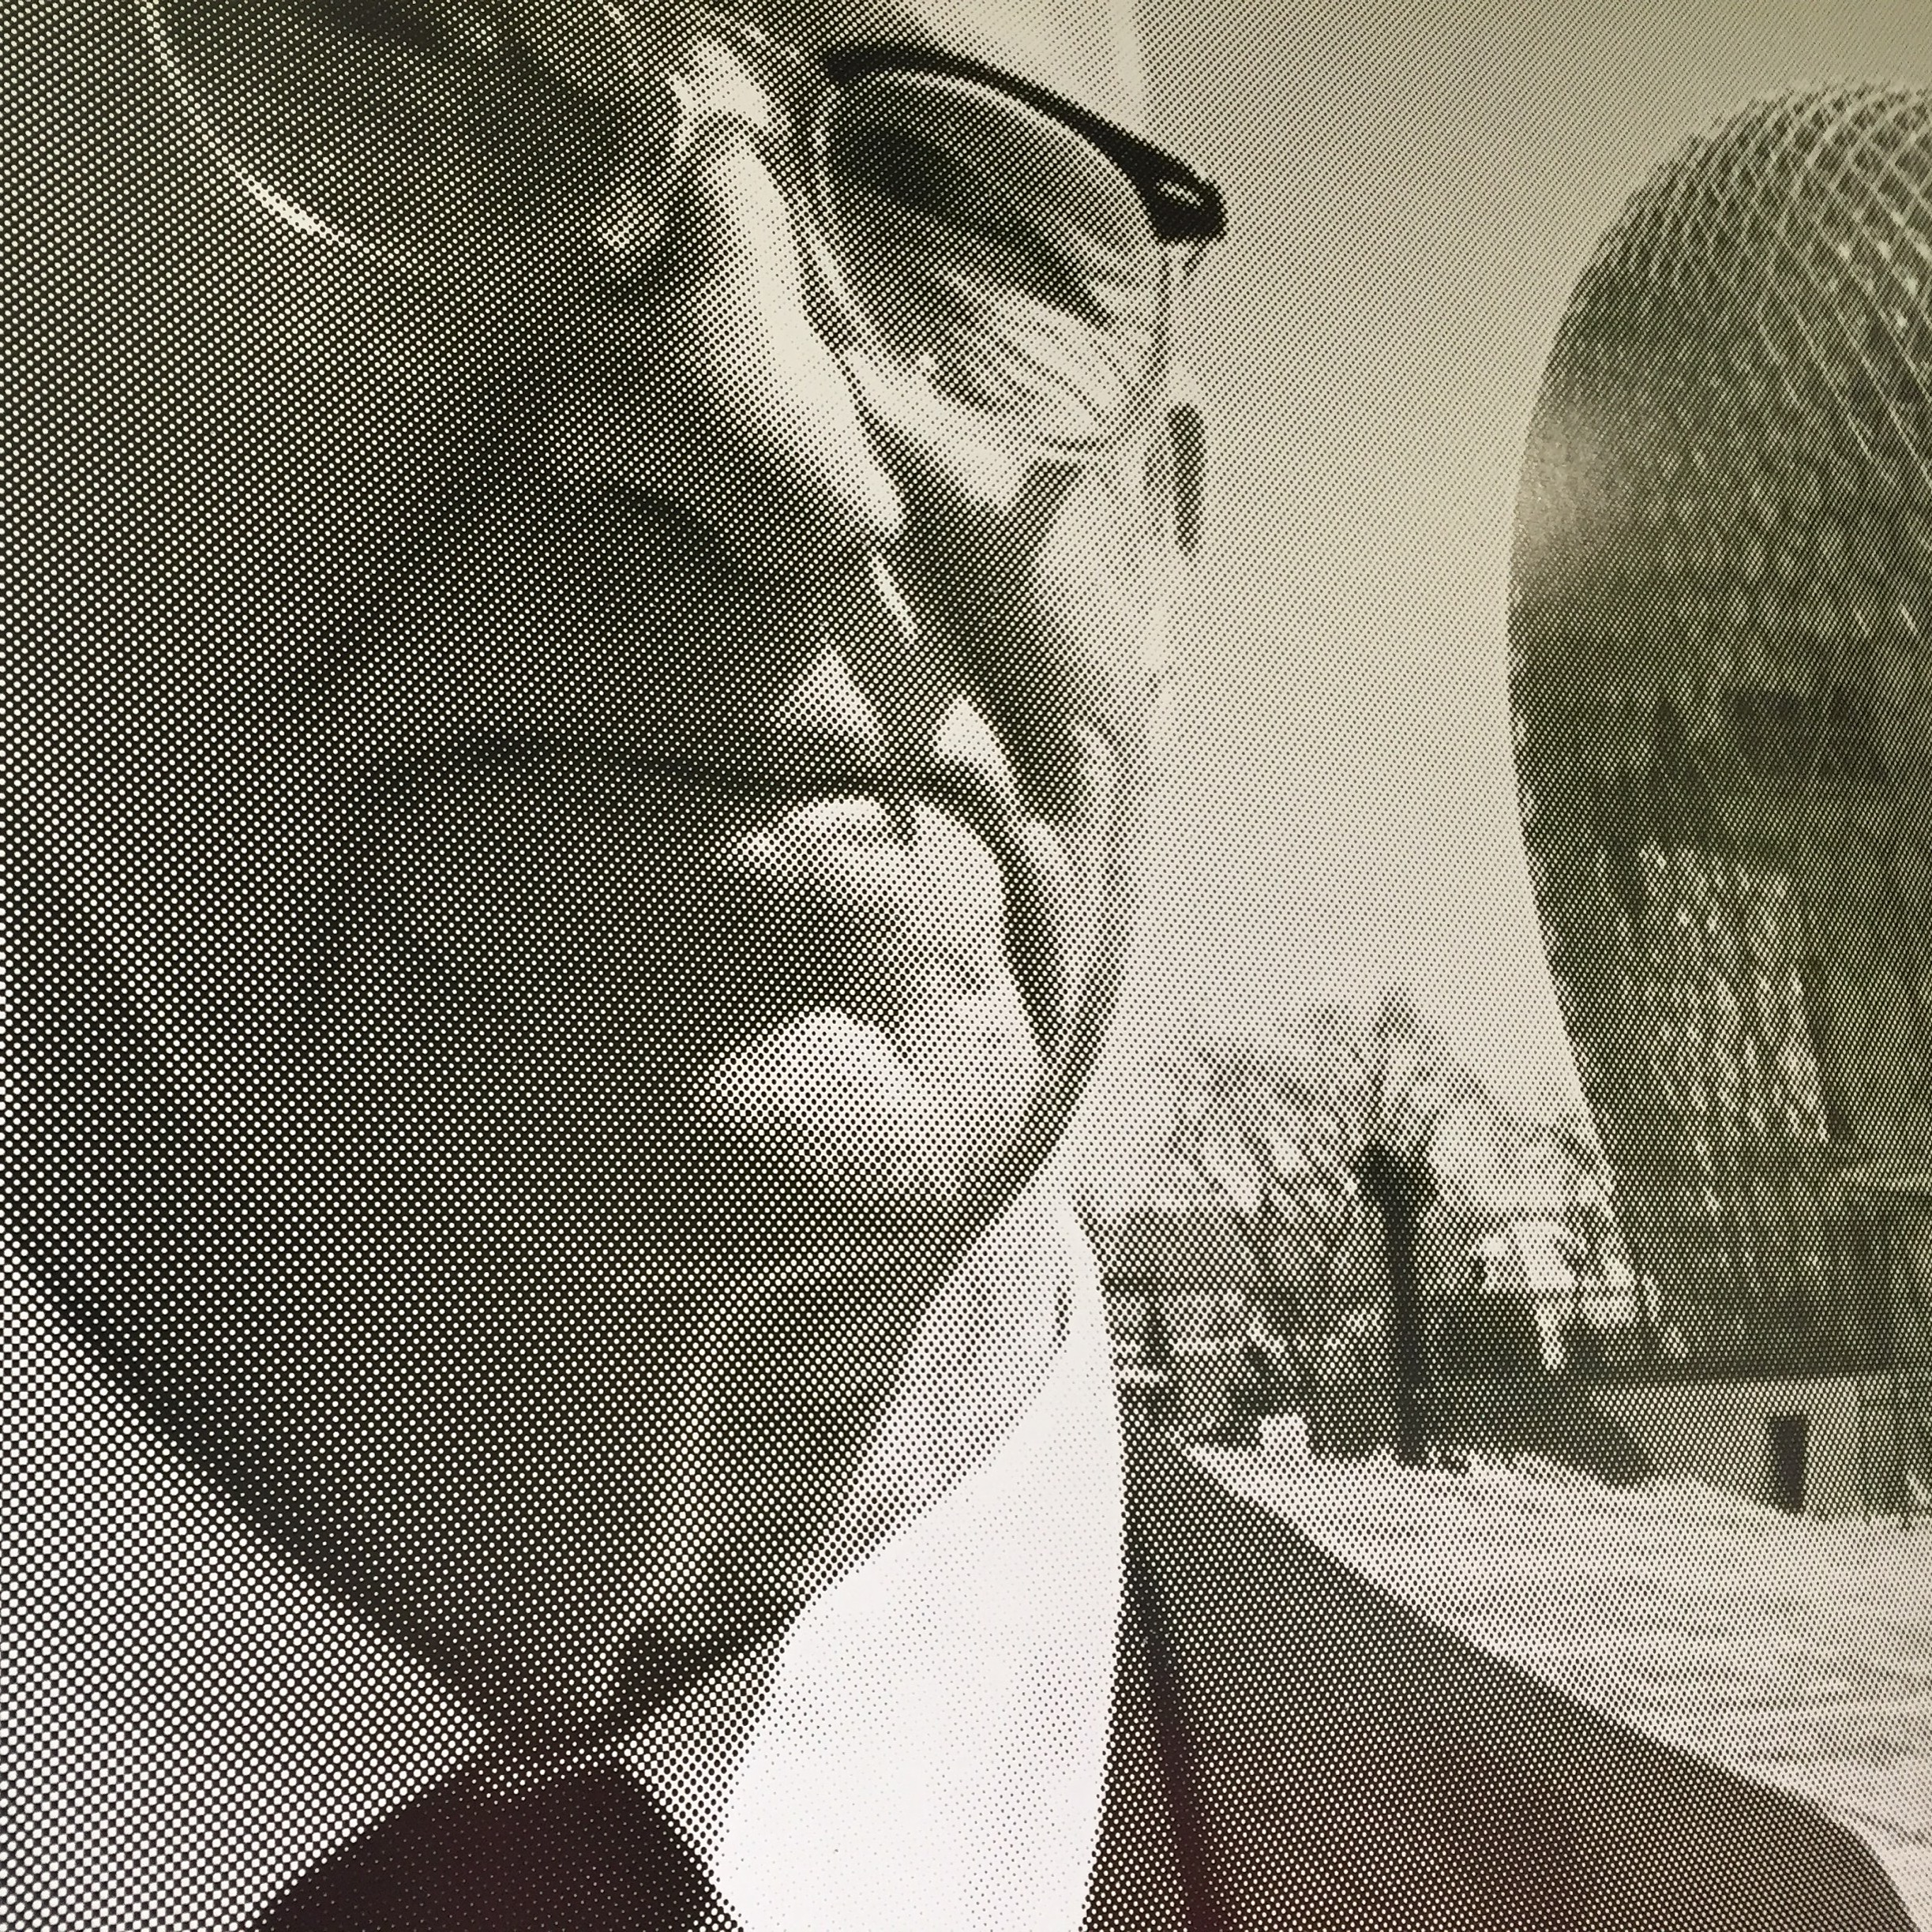 Buckminster Fuller and Geodesic Dome | Museum of Design Atlanta | March 2016